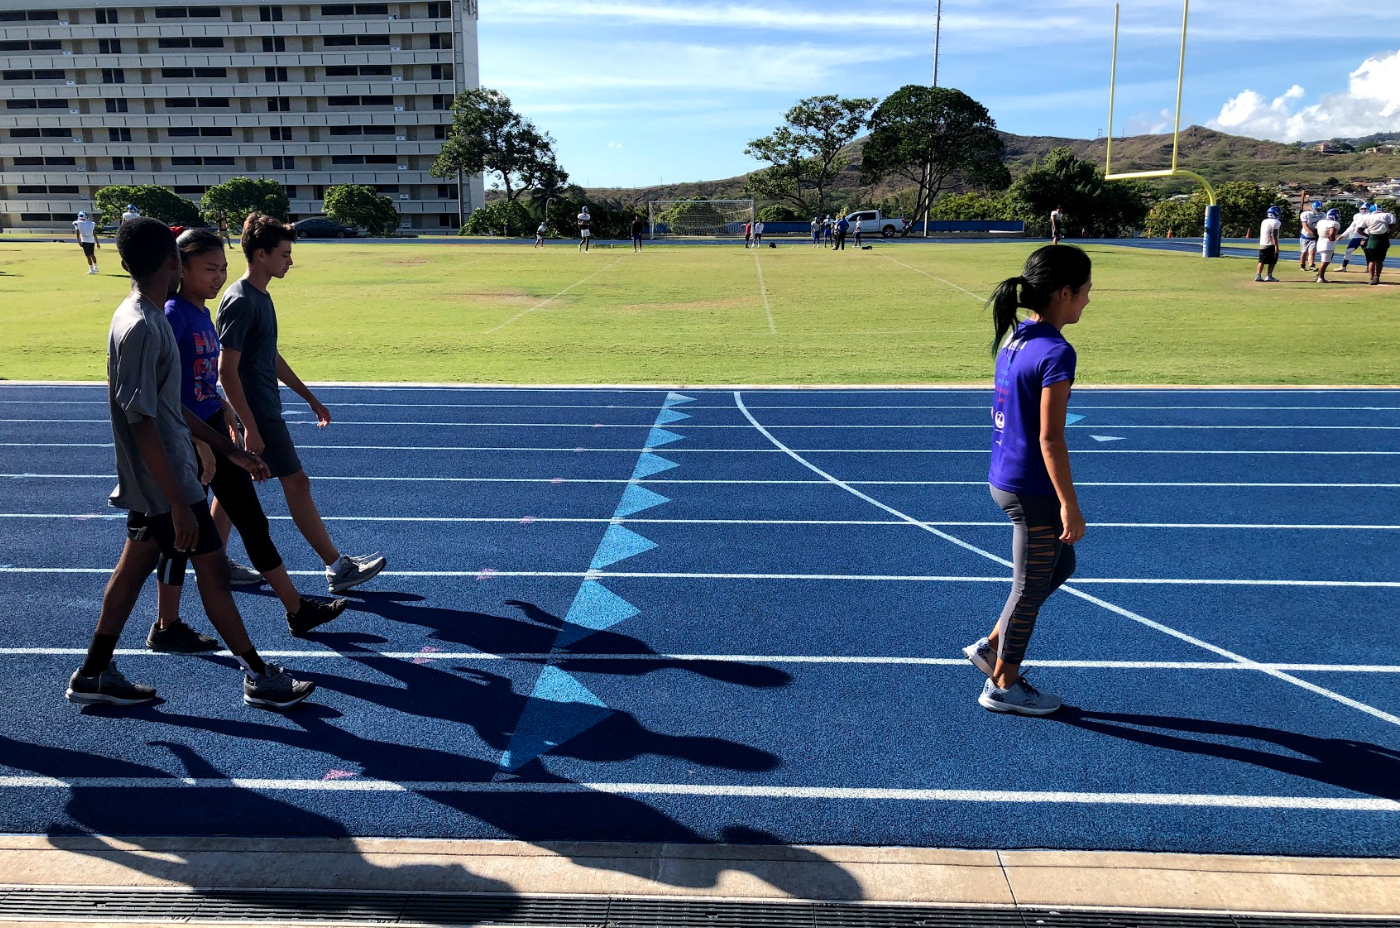 The Cross Country team warms up on the track field with the sun shining.